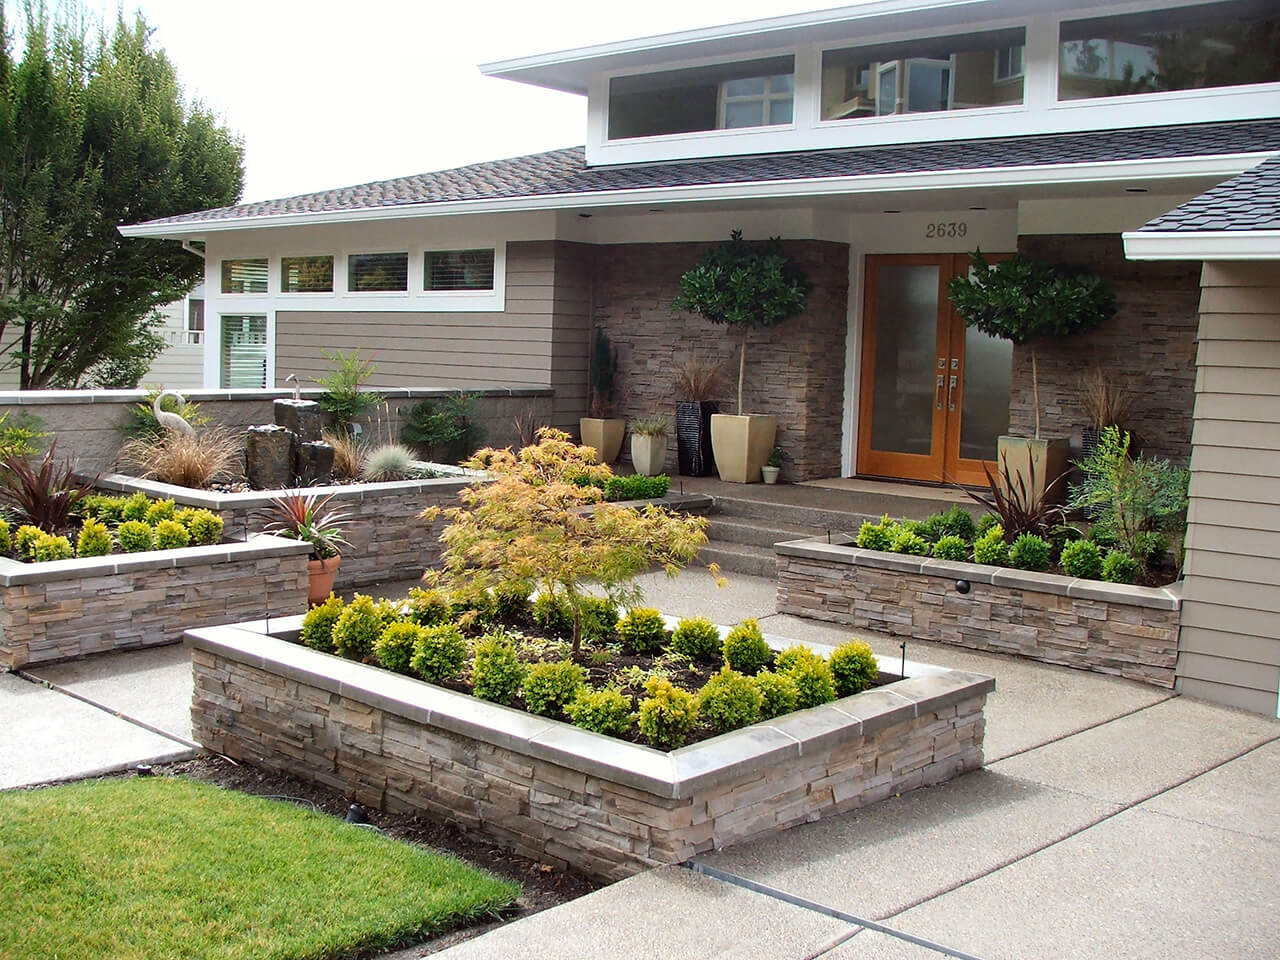 20 brilliant front garden landscaping ideas style motivation for Home front garden design